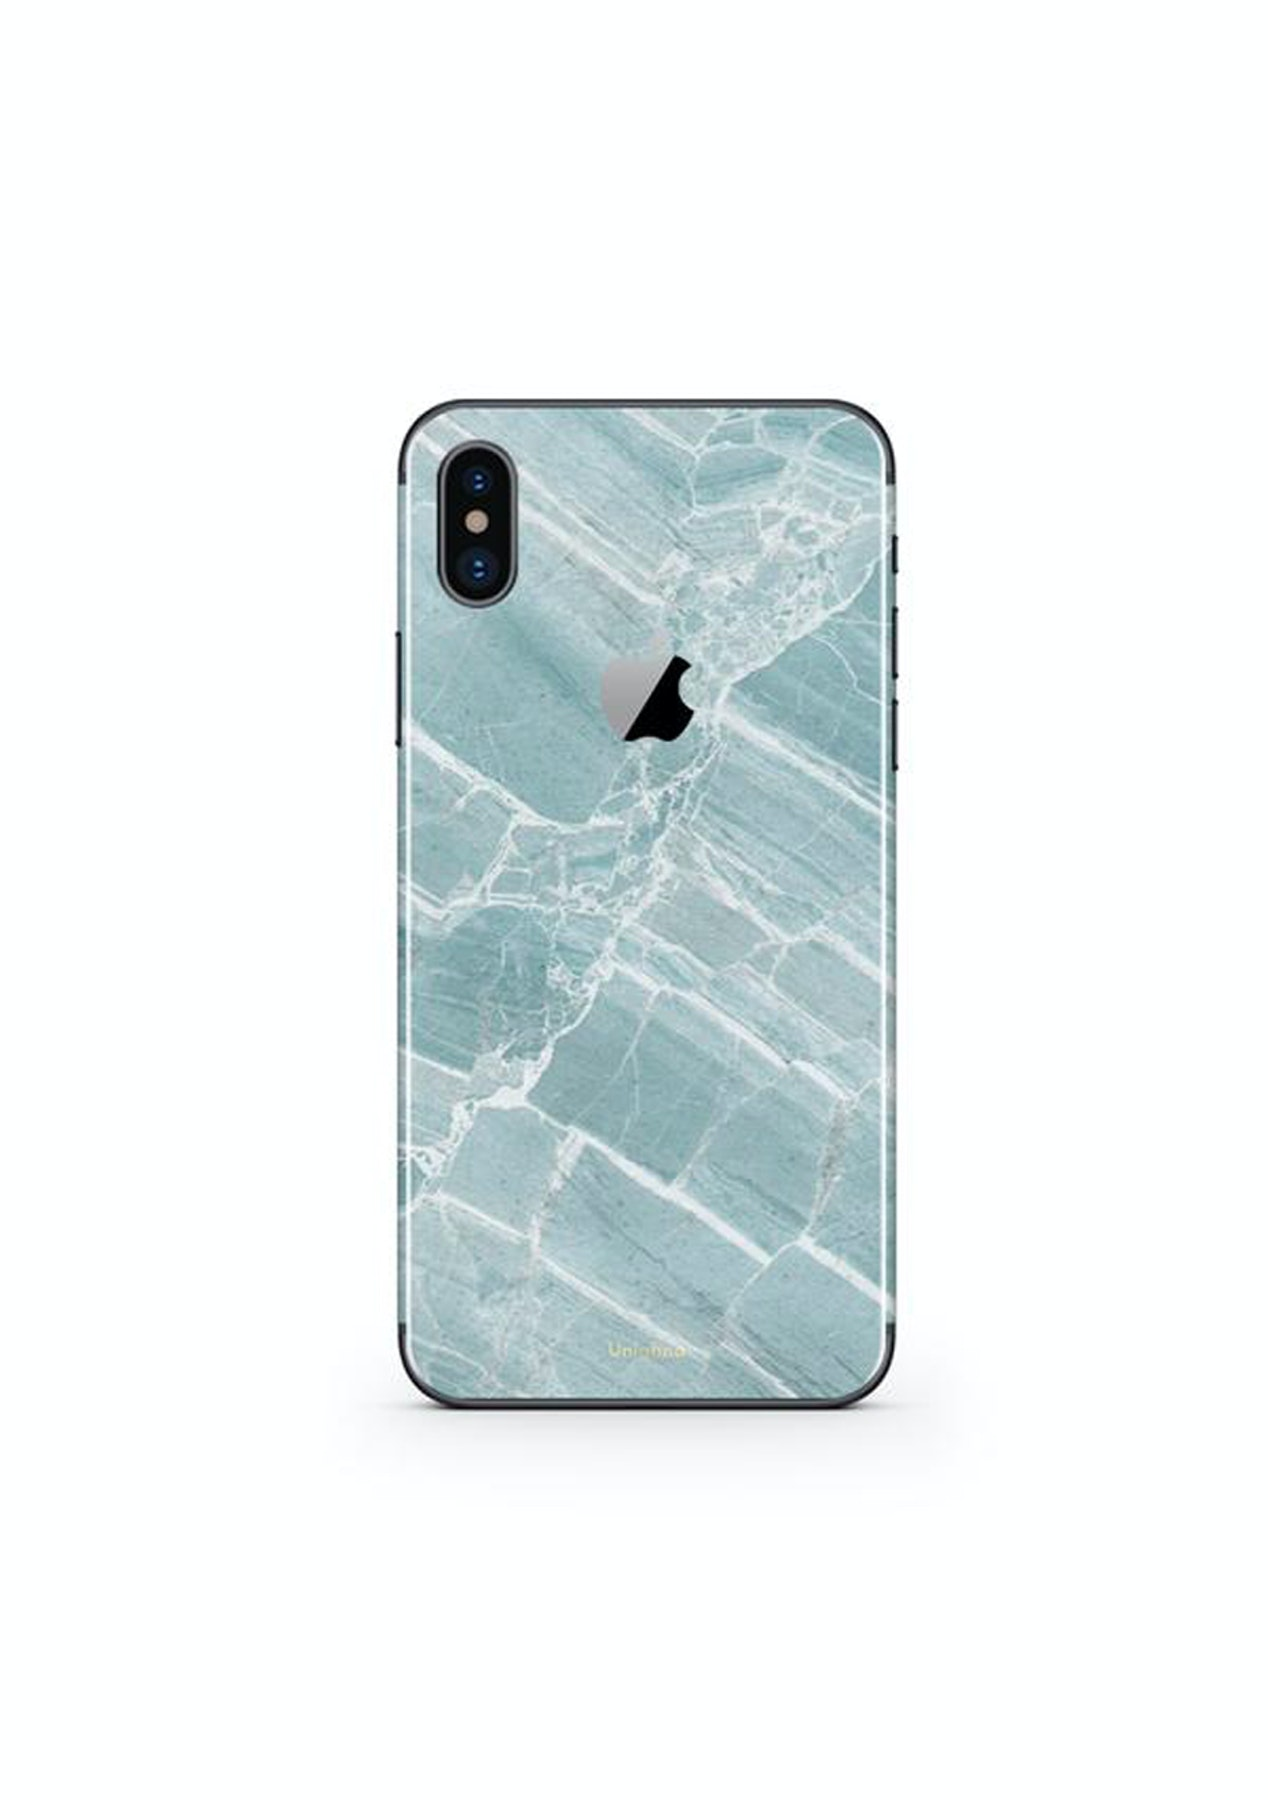 Uniqfind - Iphone Skins - Mint Marble